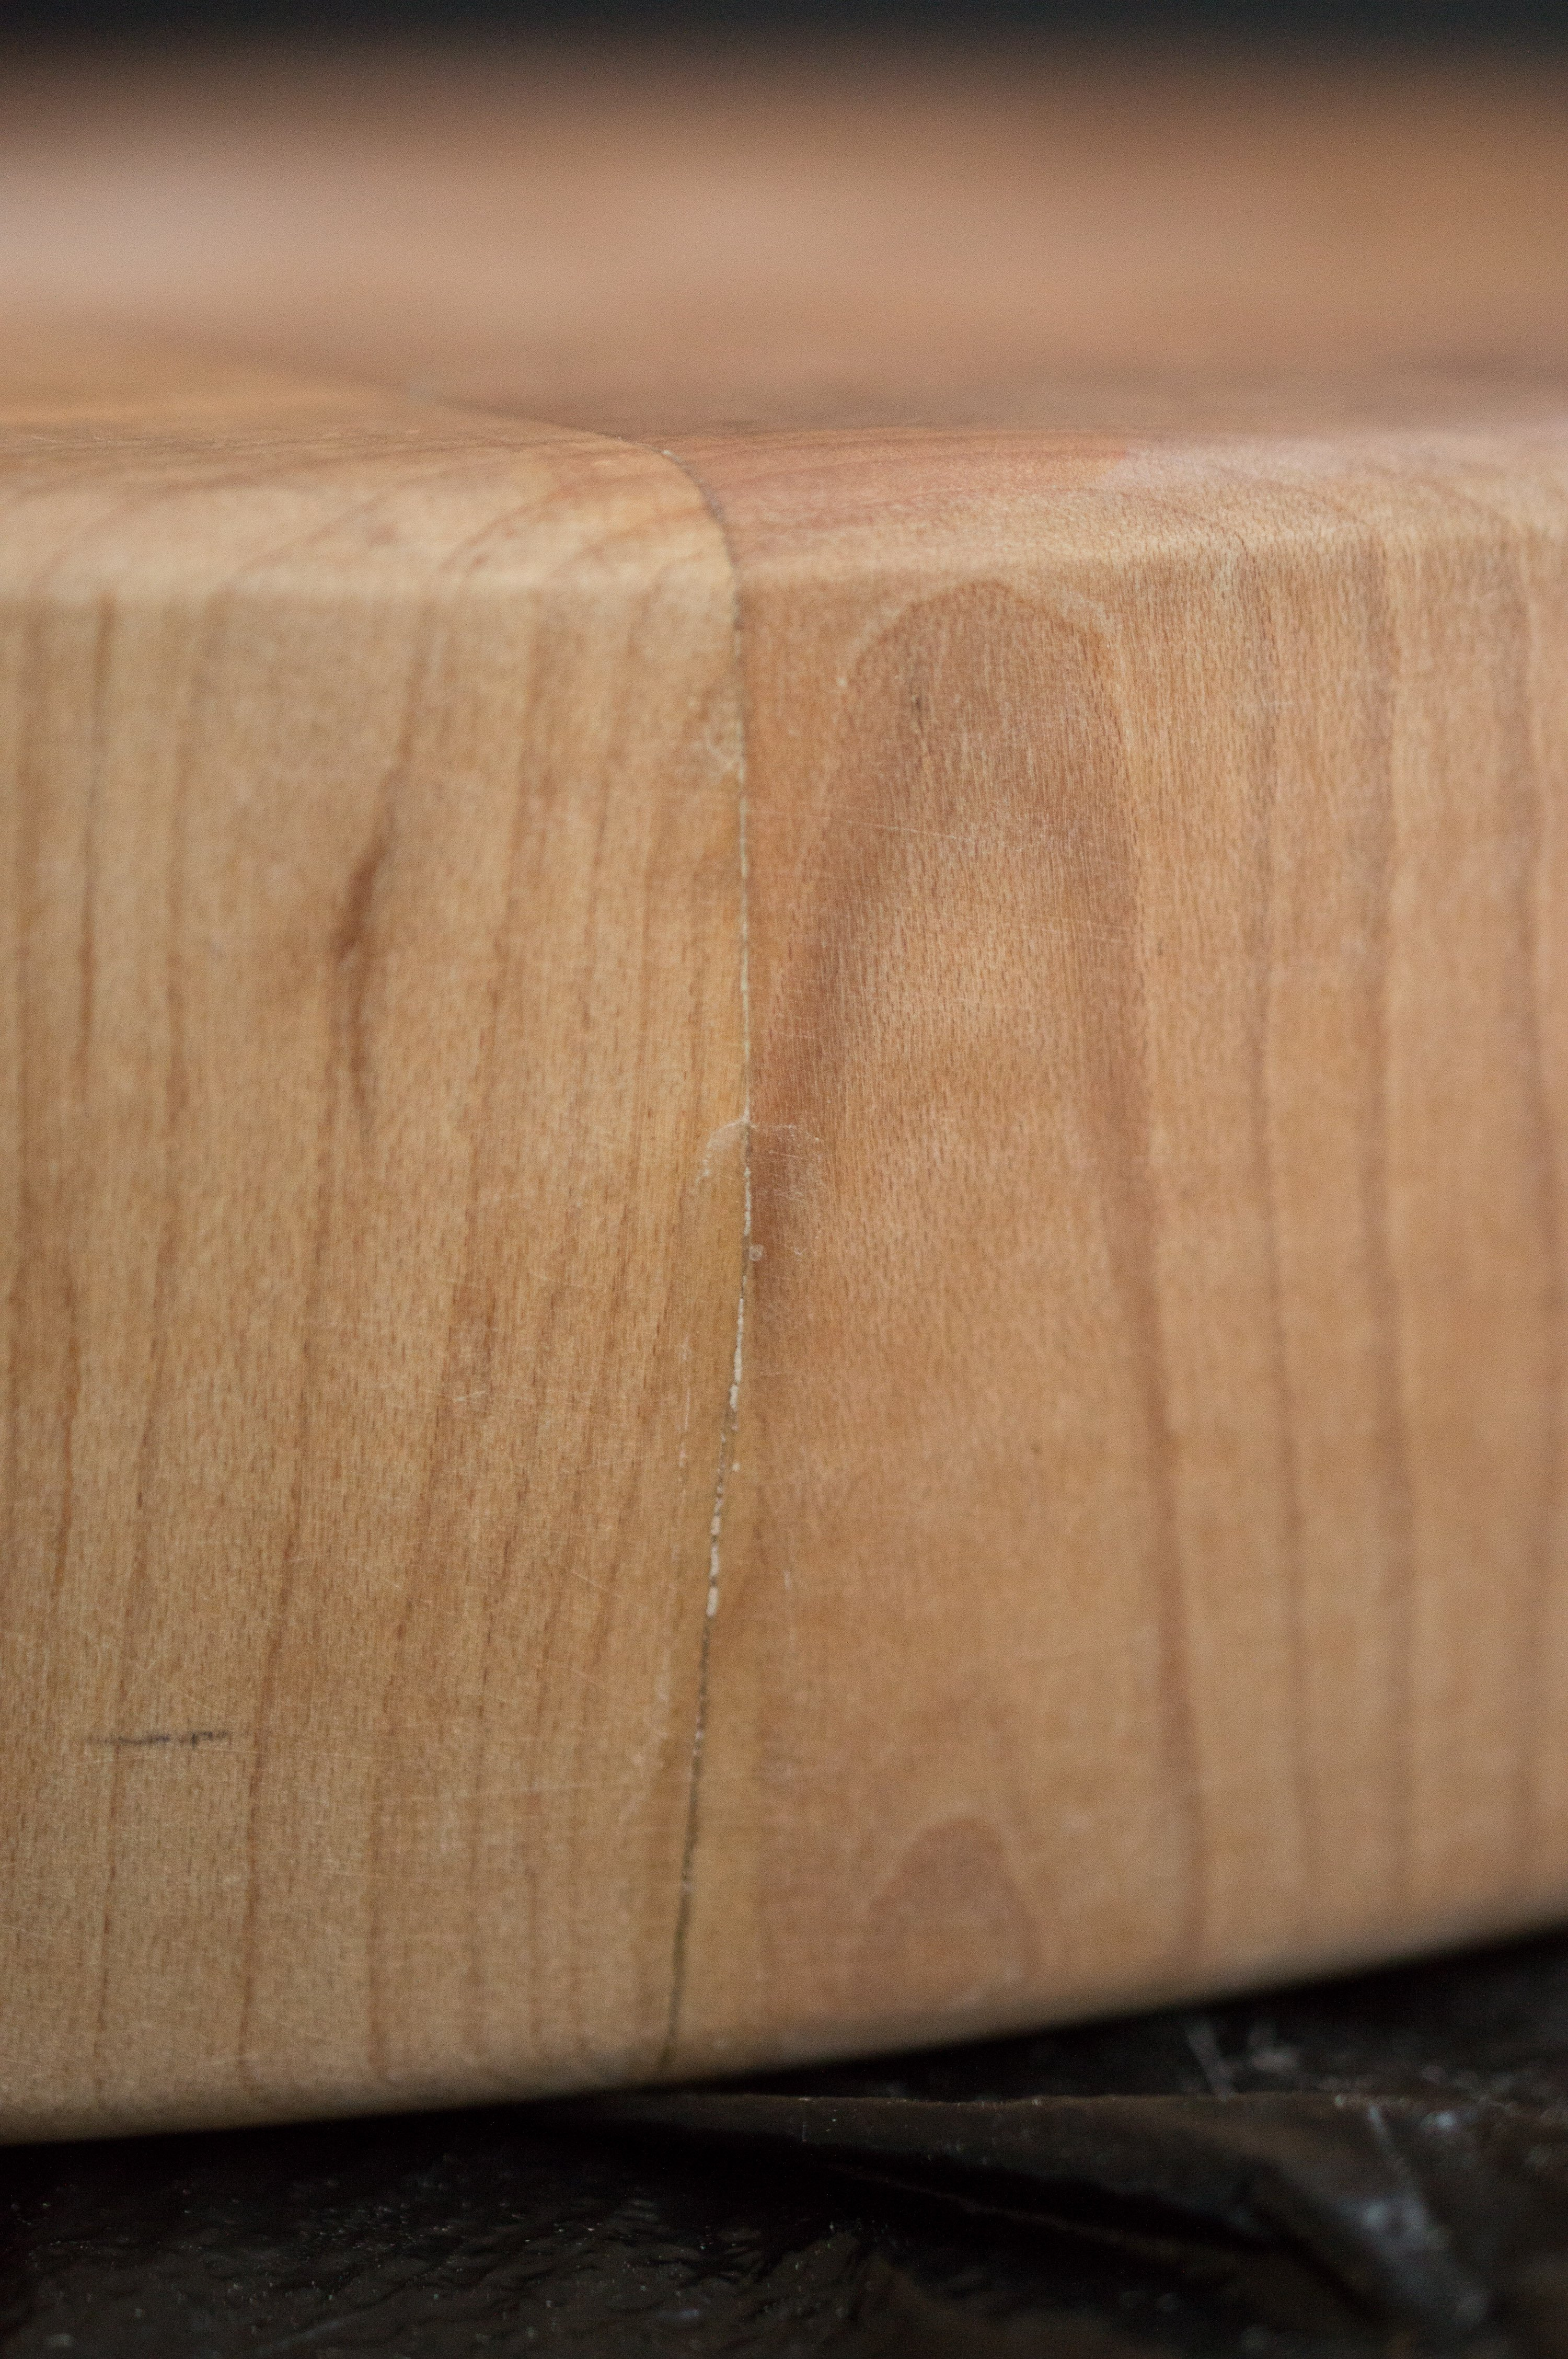 How To Repair Small Cracks In a Butcher Block or Cutting